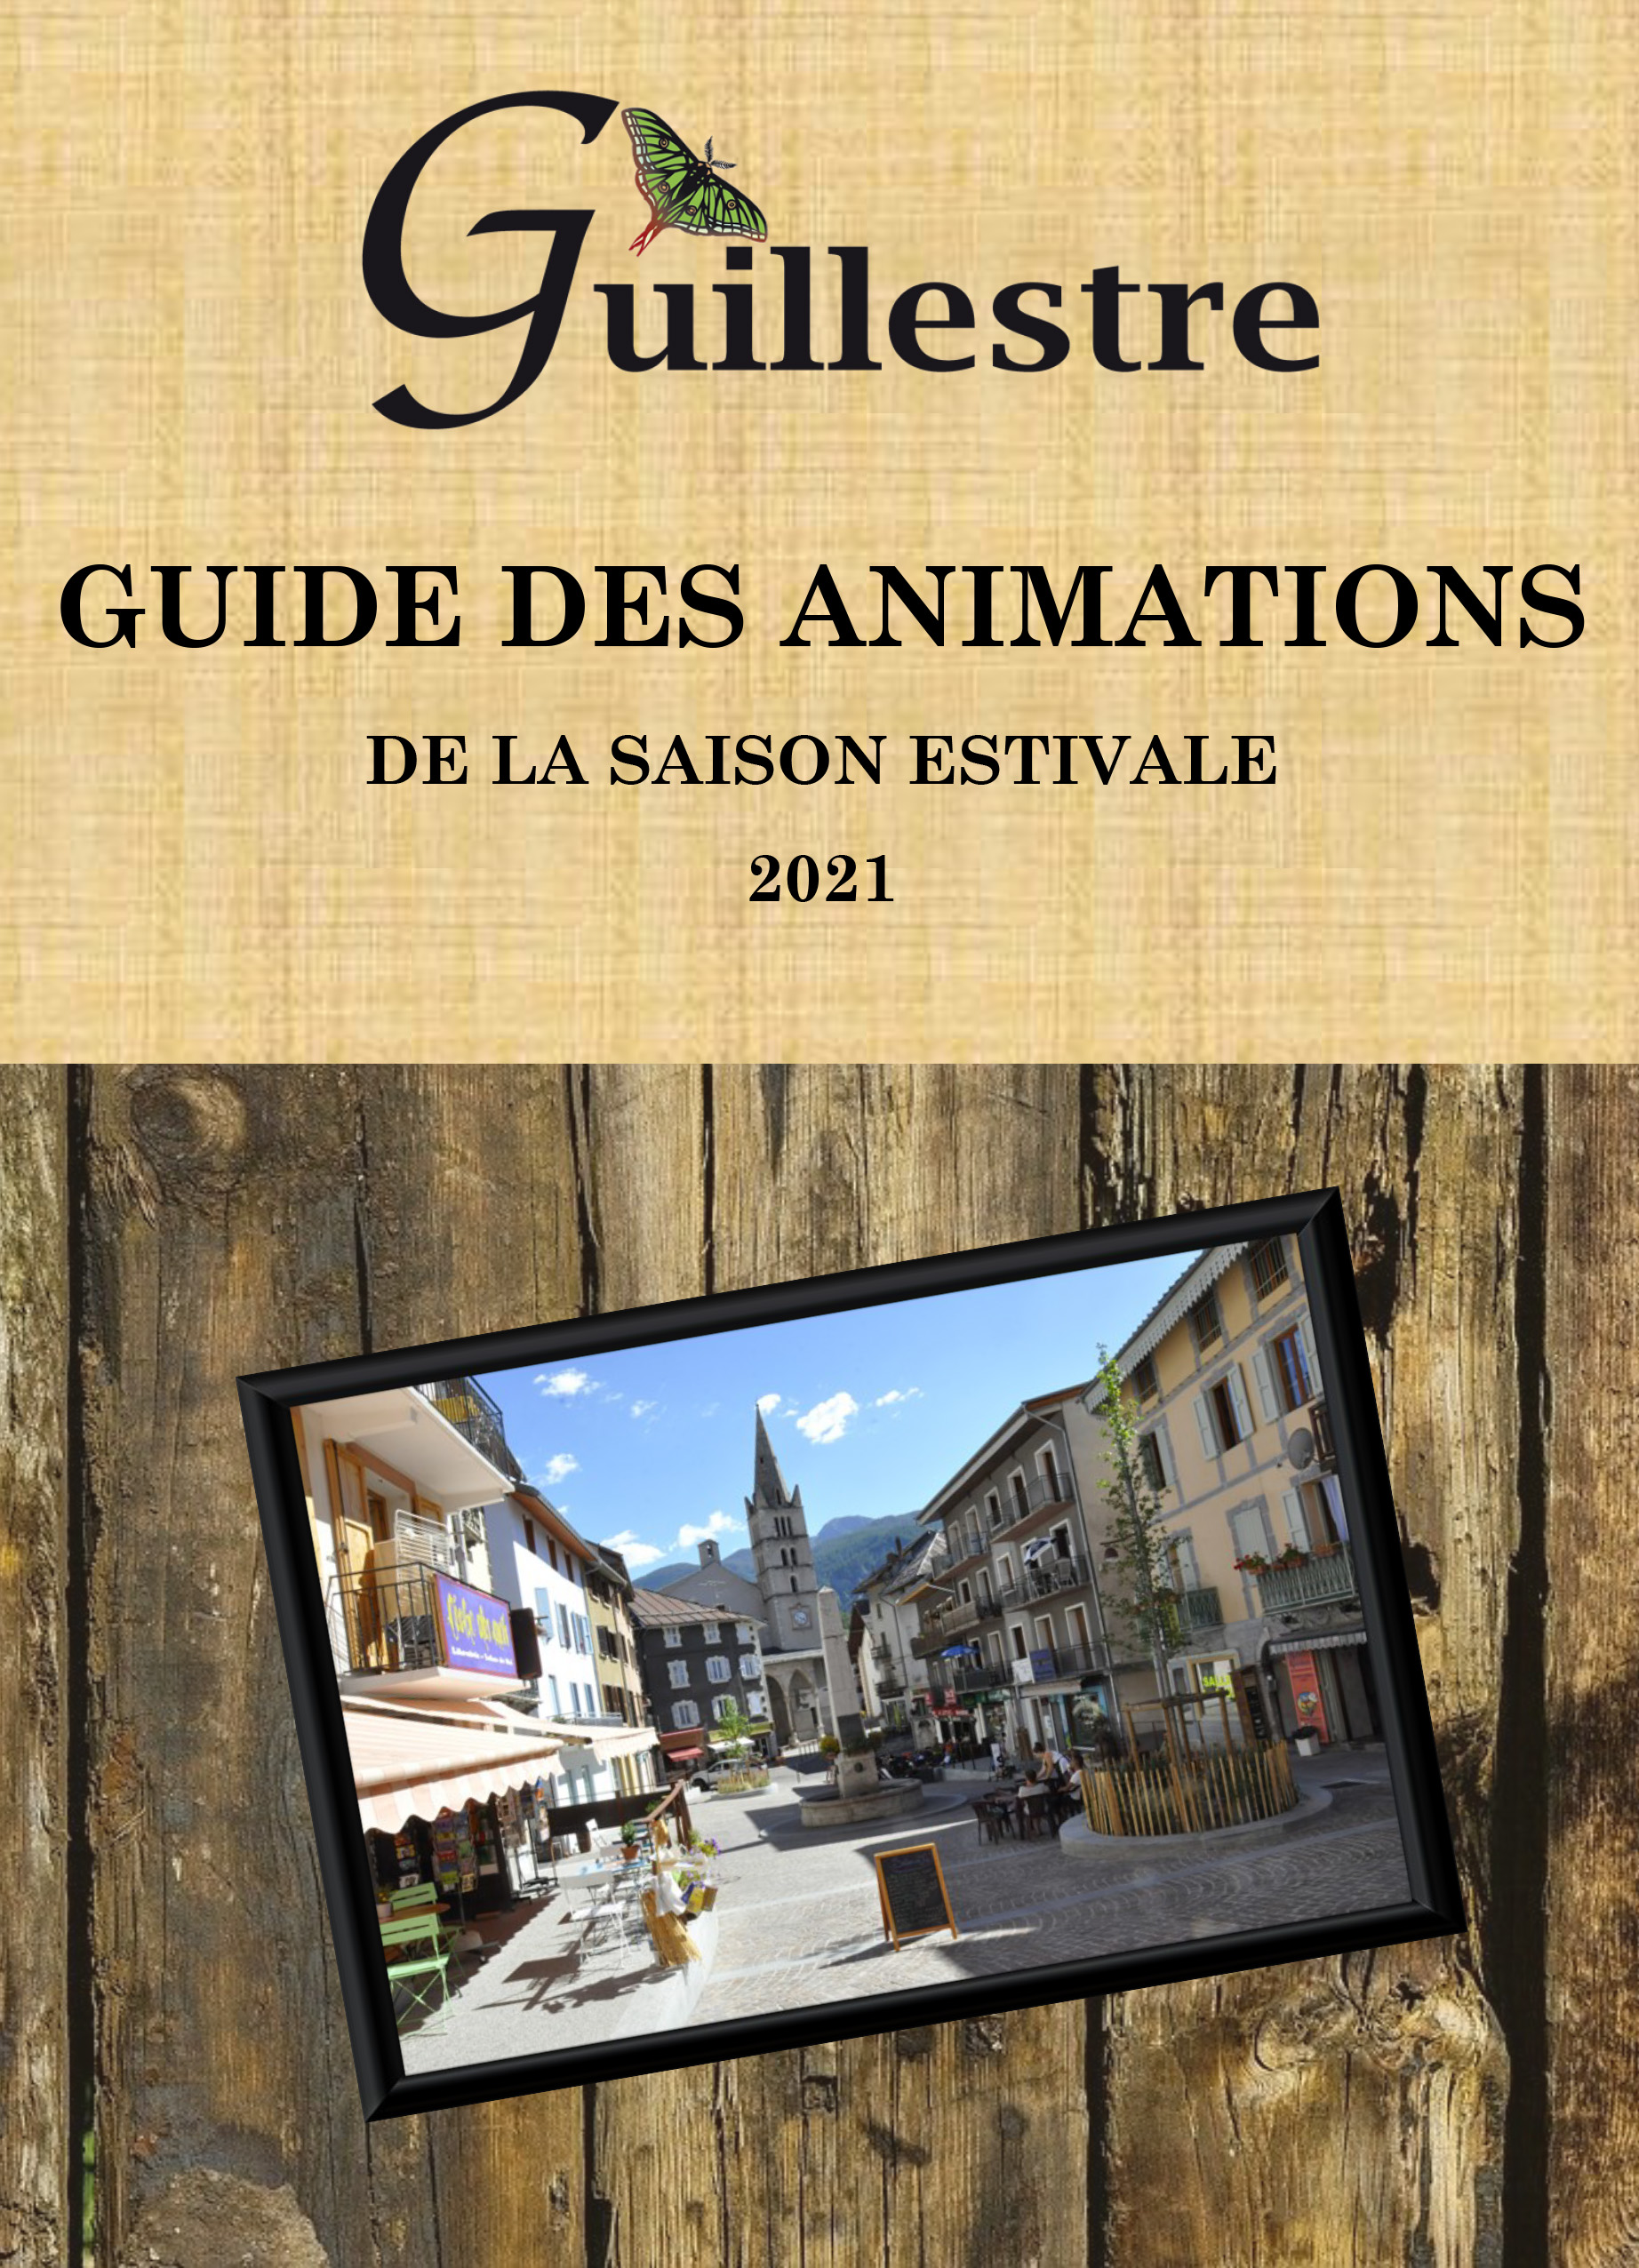 guide des animations format a5 2021-1.jpg